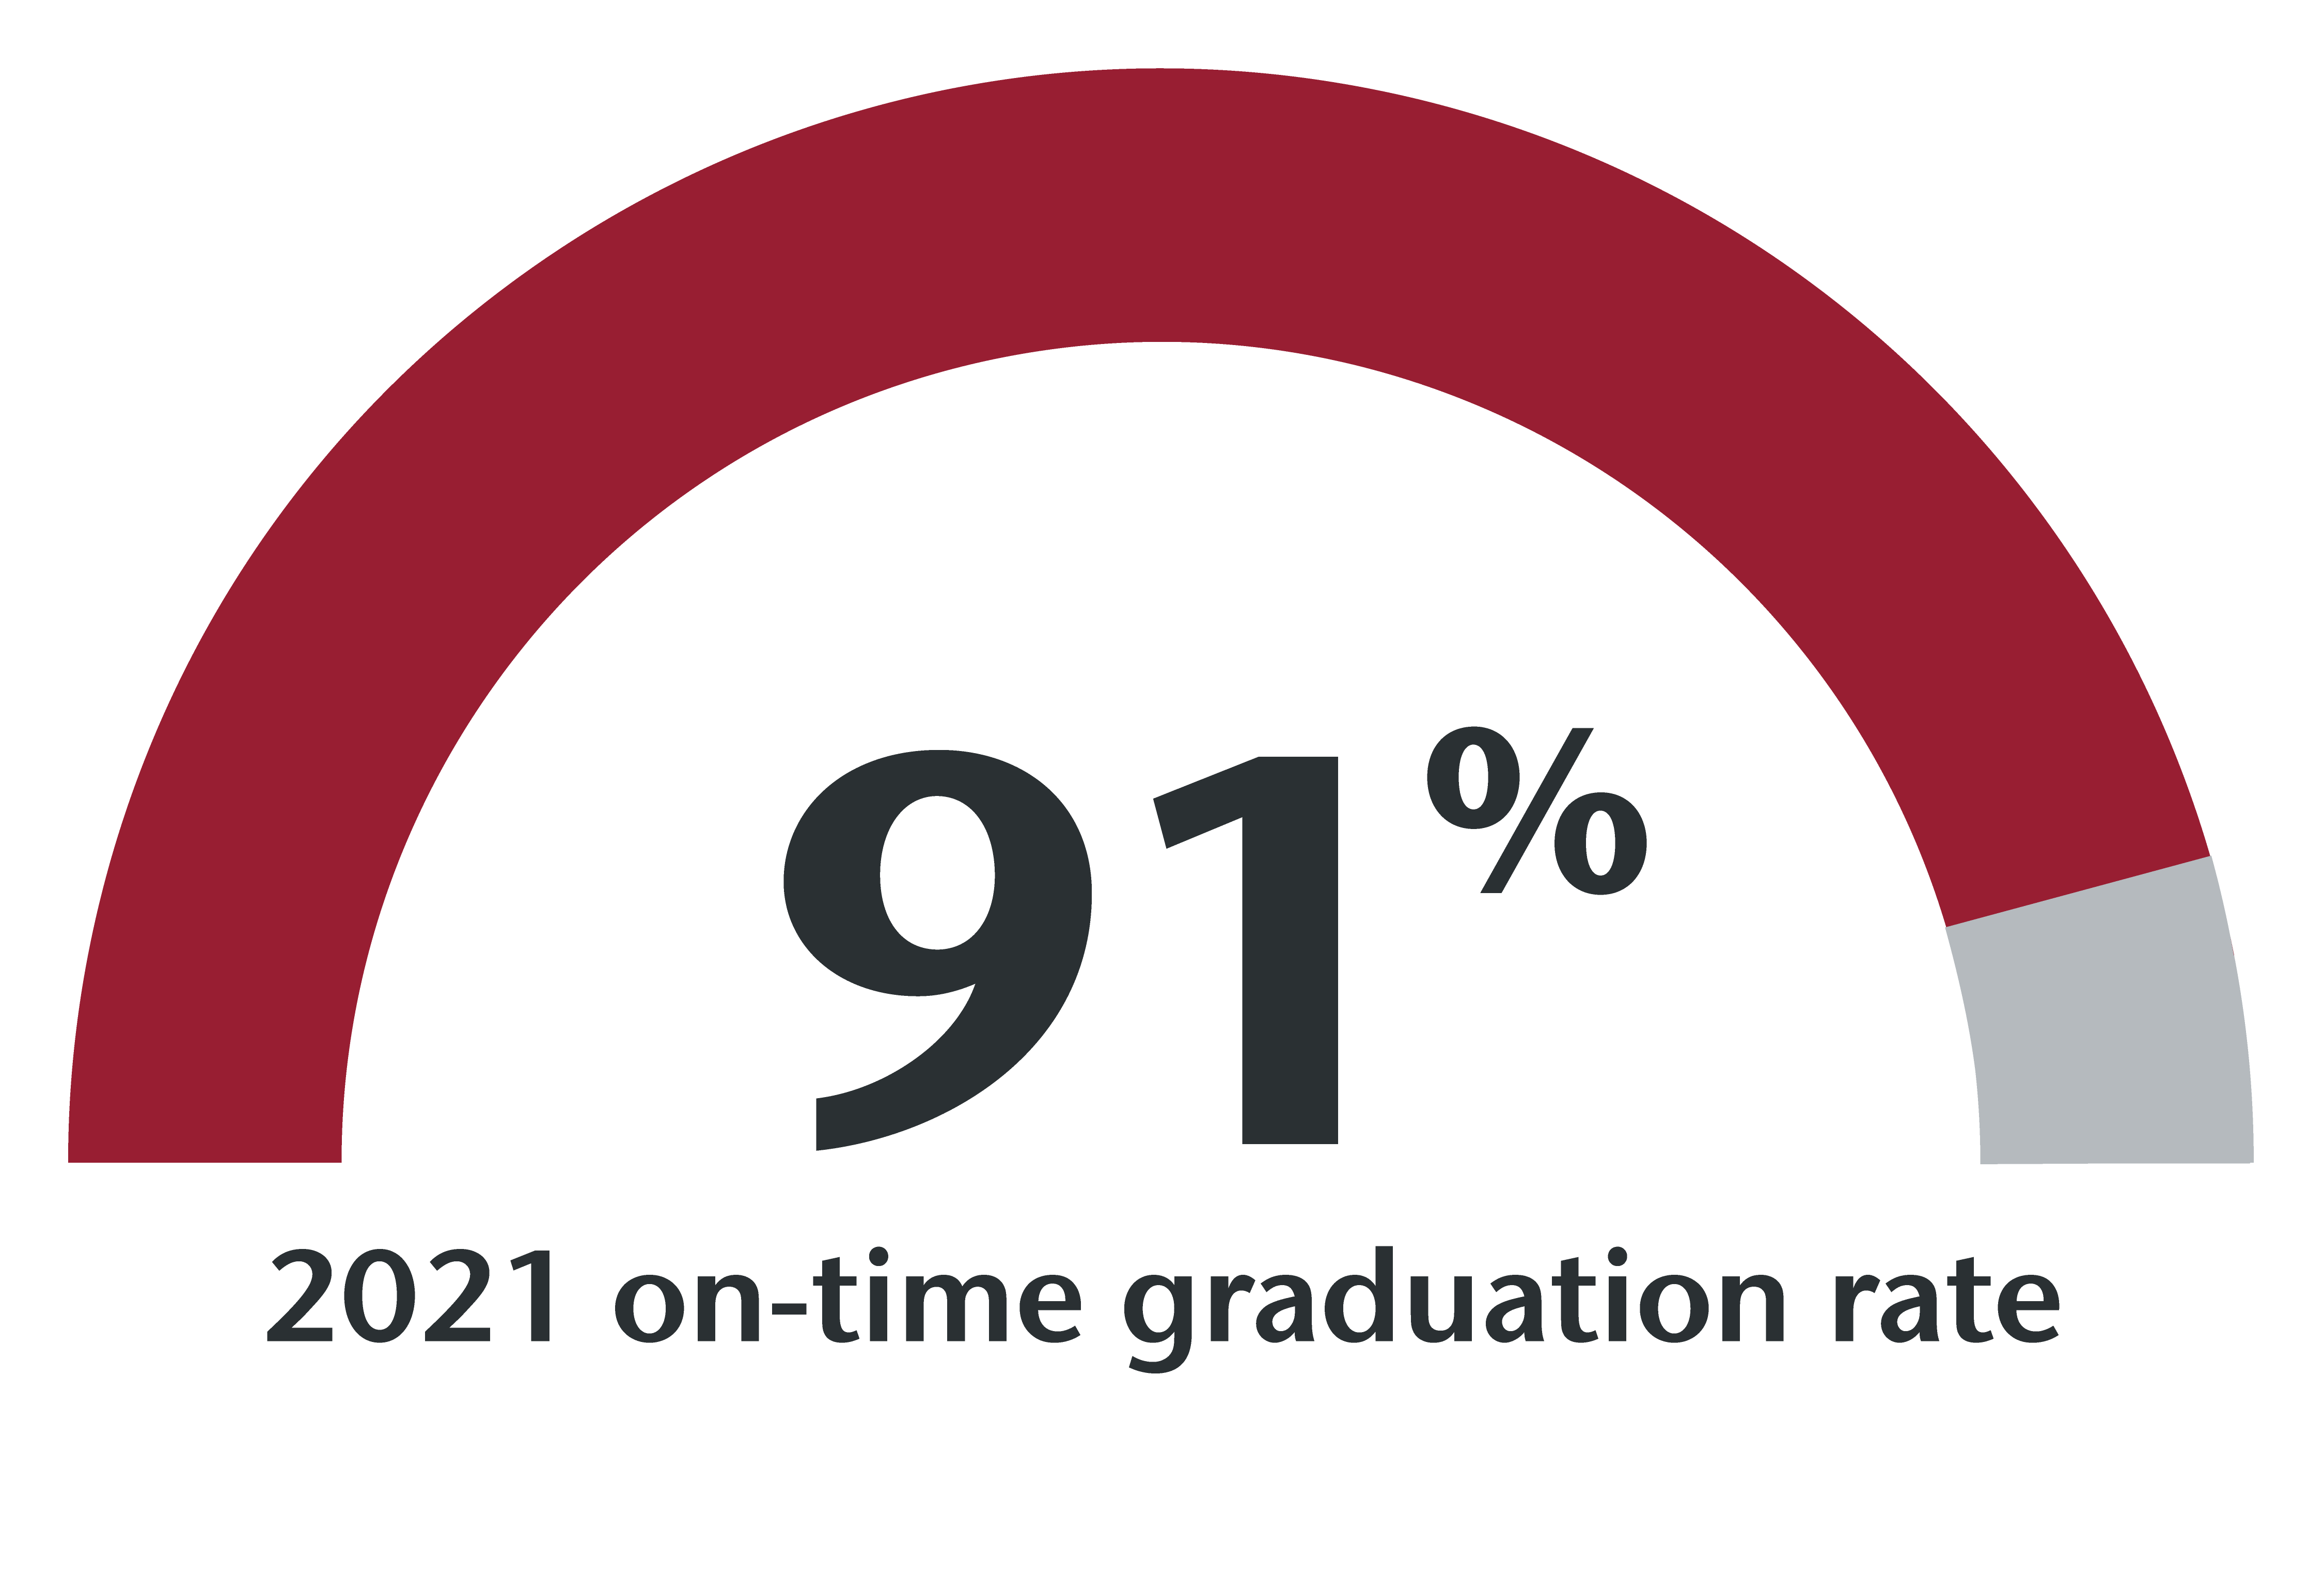 91.4% on-time graduation rate for 2021